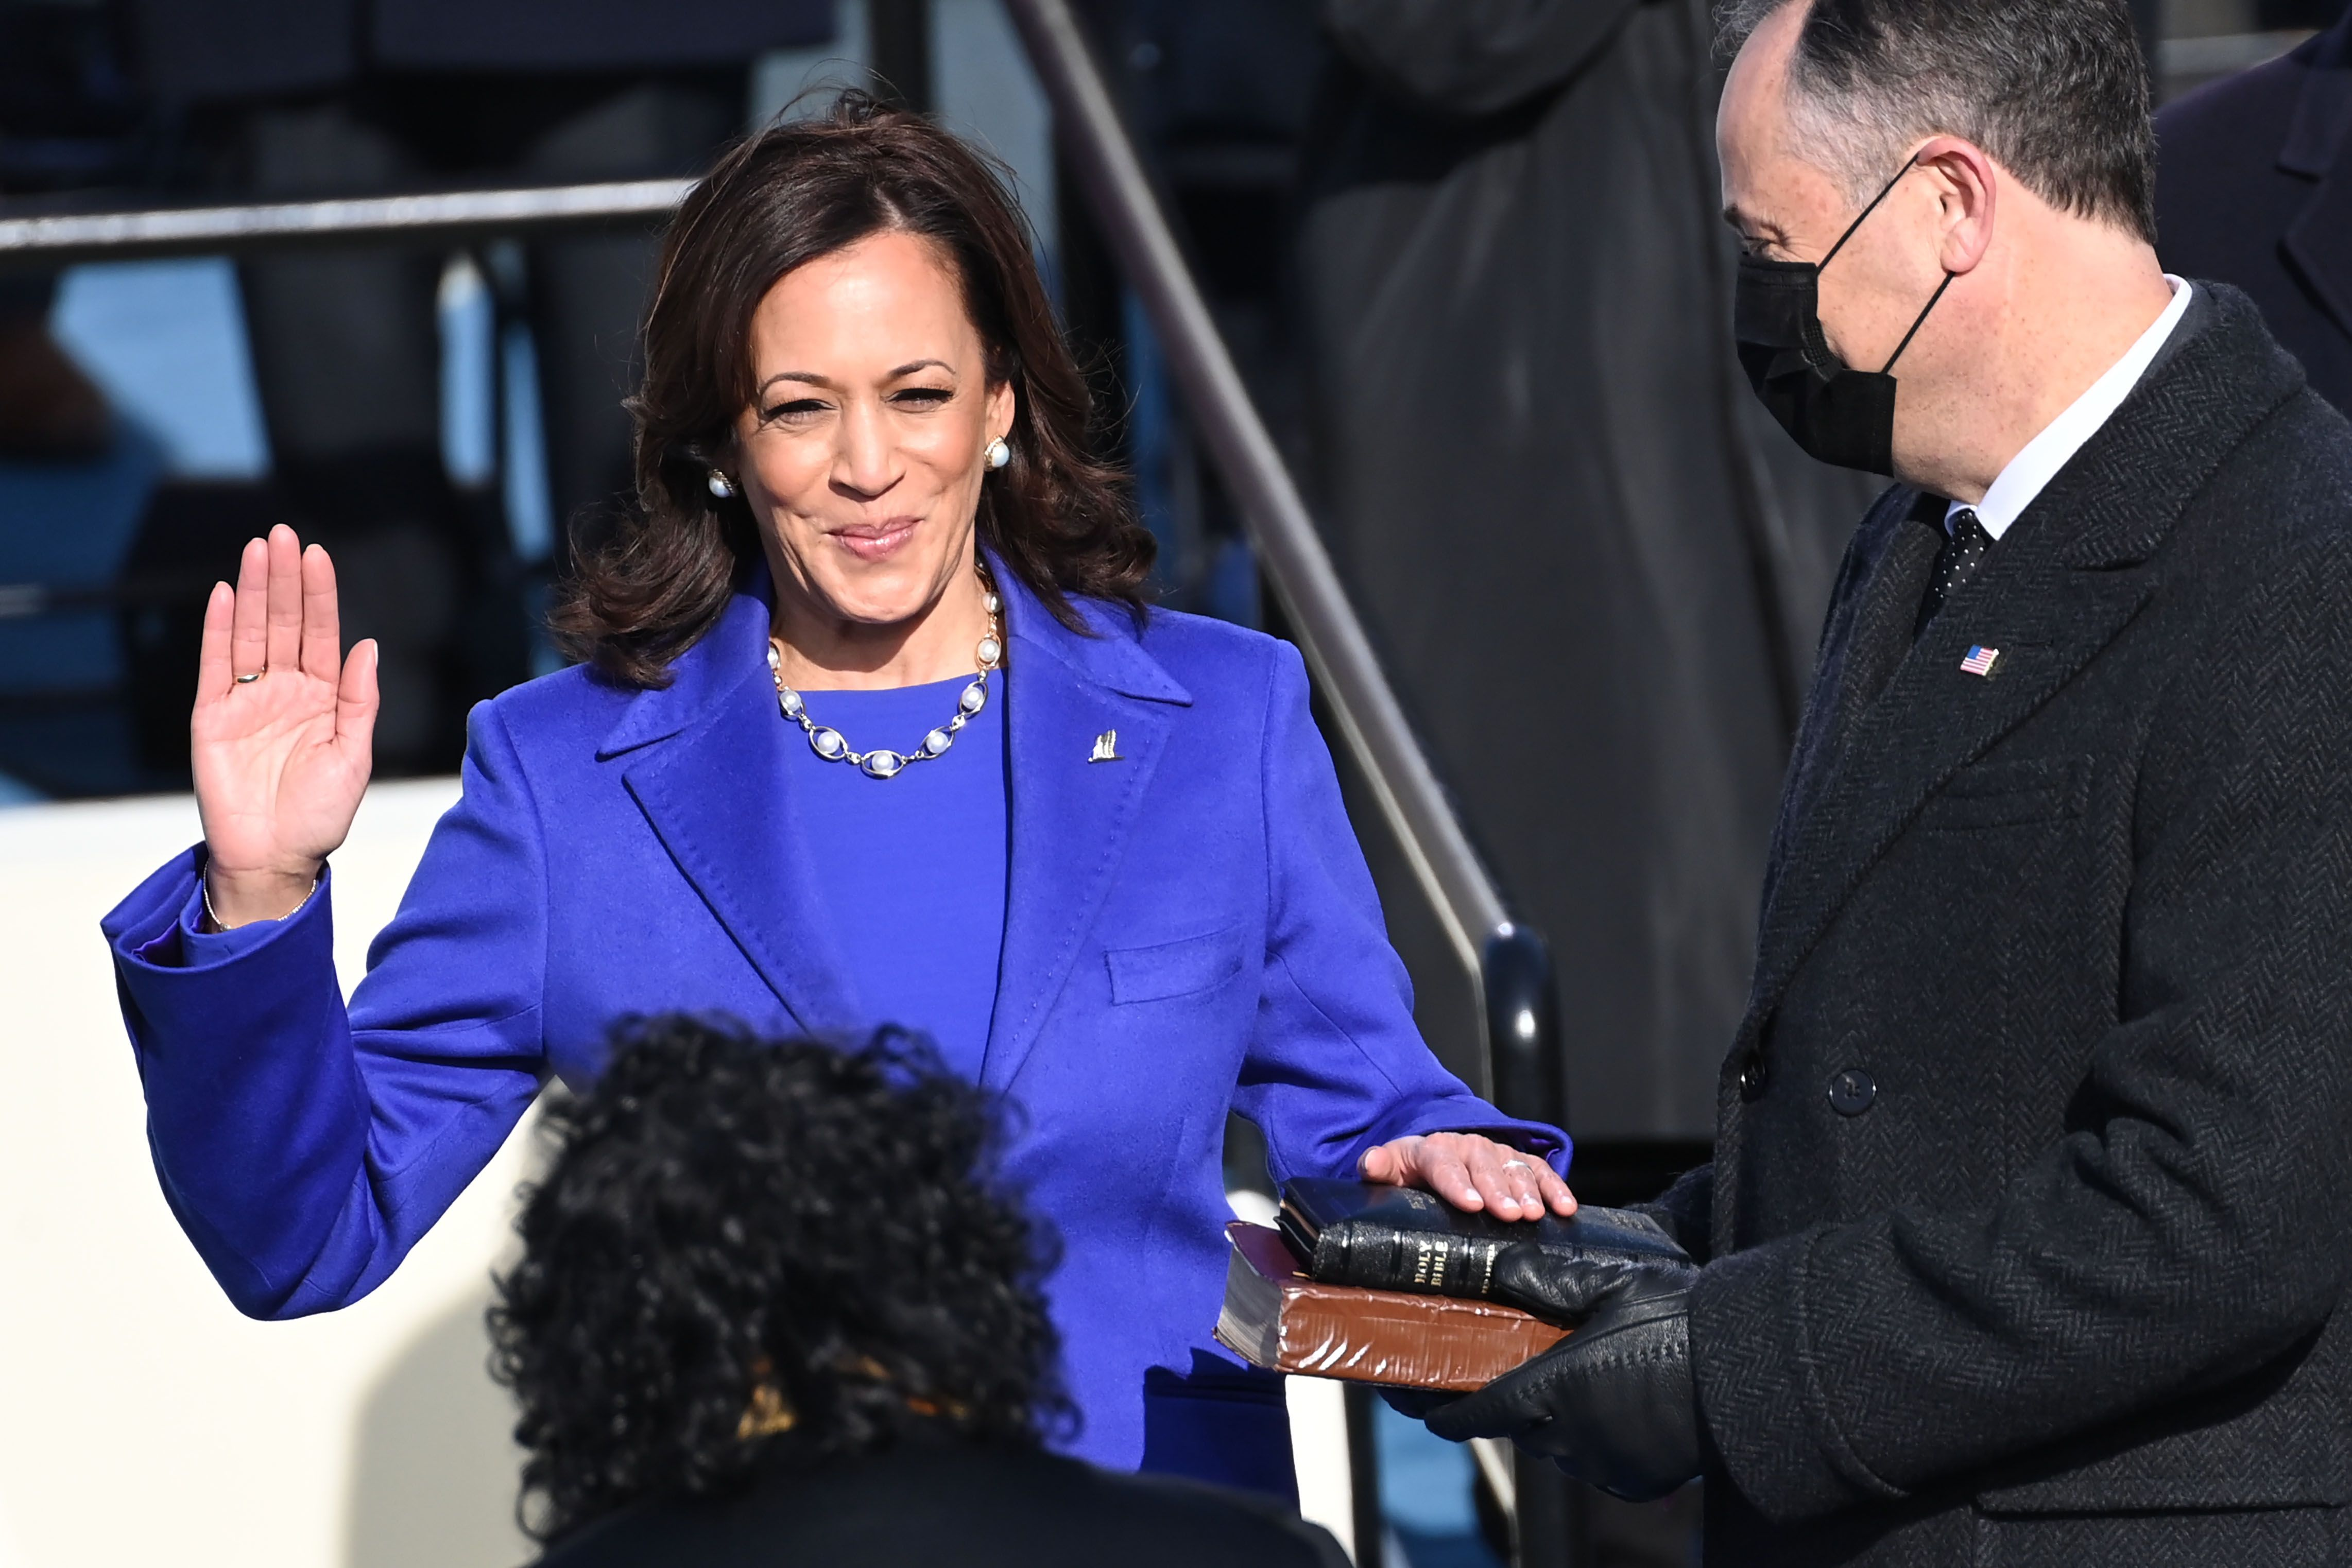 VP Kamala Harris Wears a Pearl Necklace at the 2021 Inauguration